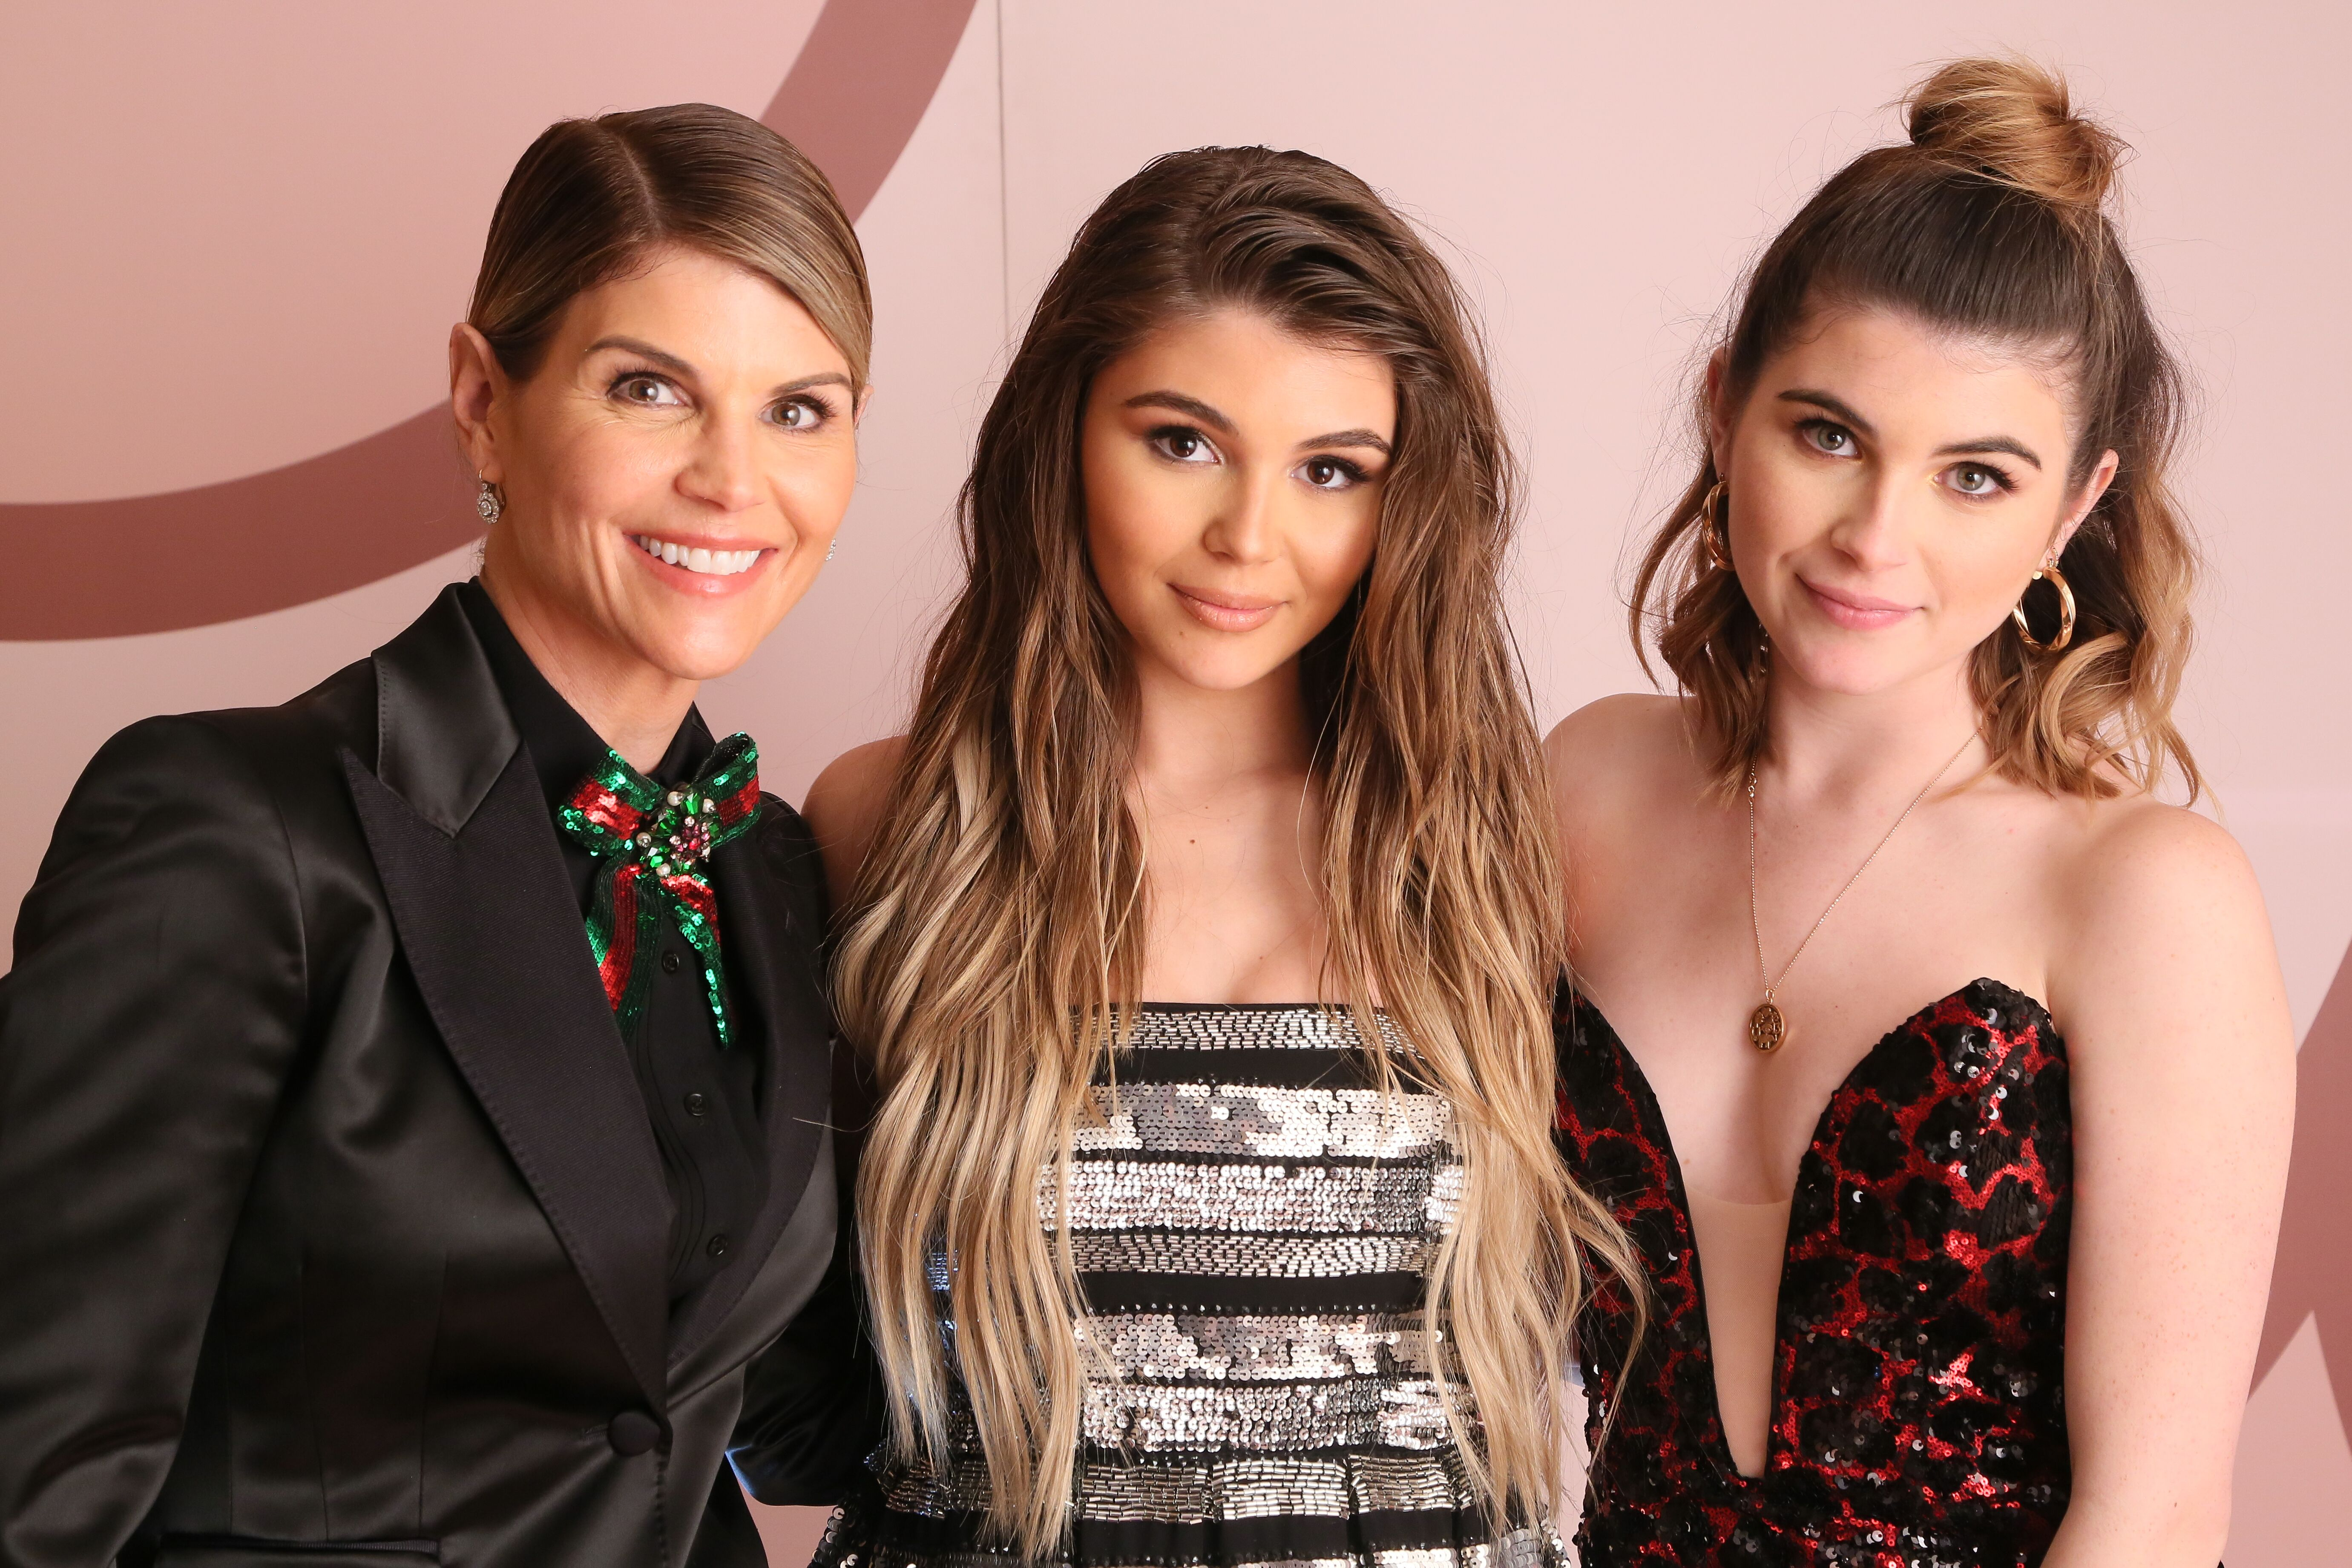 Lori Loughlin, Olivia Jade and Isabella Rose Giannulli at the Olivia Jade X Sephora Collection Palette Collaboration Launching | Photo: Getty Images